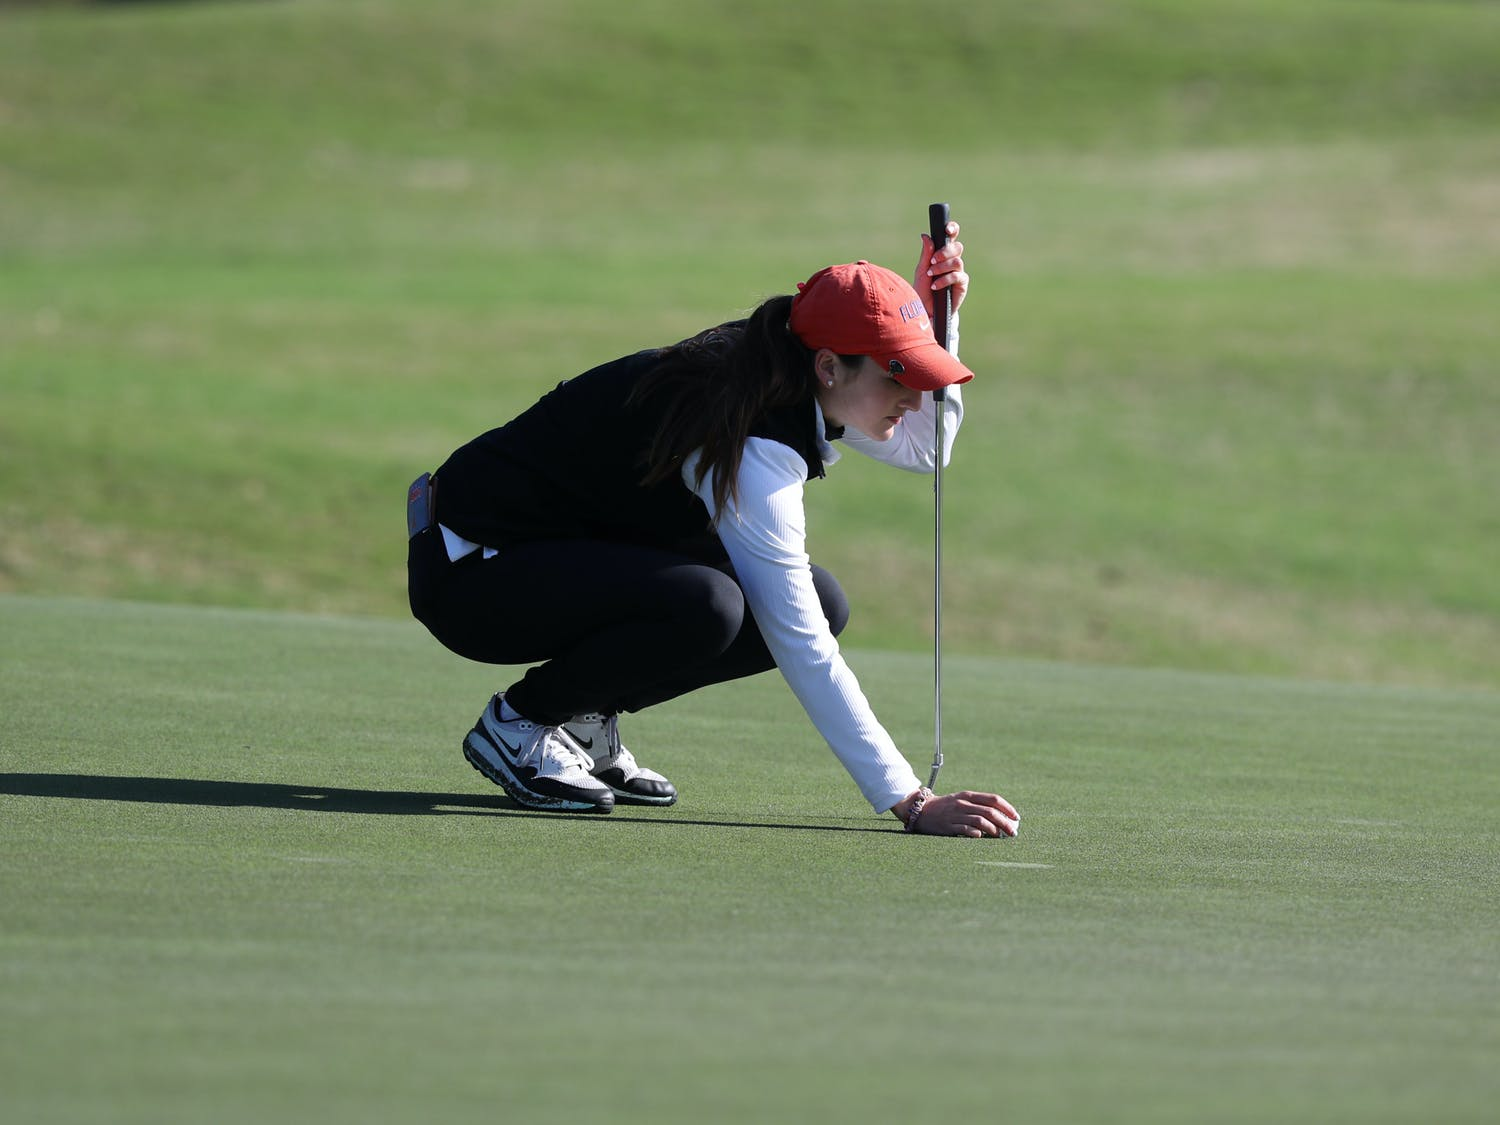 Maisie Filler lines up a putt at the Gators Invitational on Feb. 21. Florida's season came to an end at the NCAA Regionals Wednesday. / UAA Communications photo by Alex de la Osa